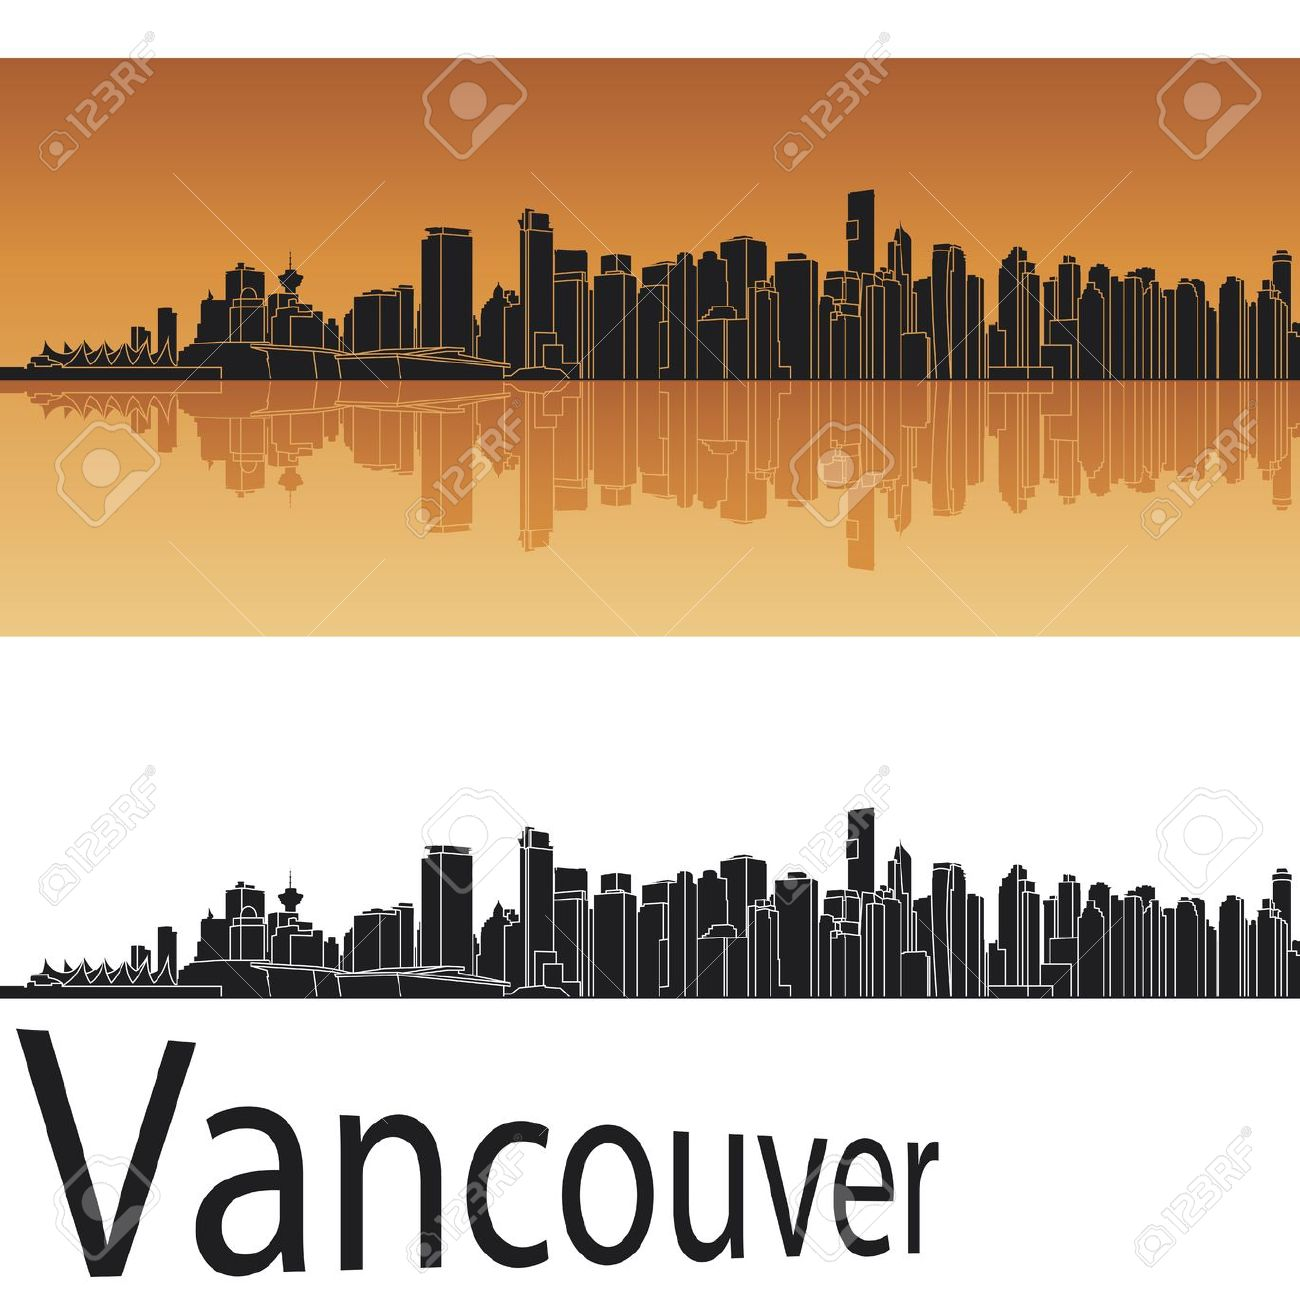 Vancouver clipart #2, Download drawings